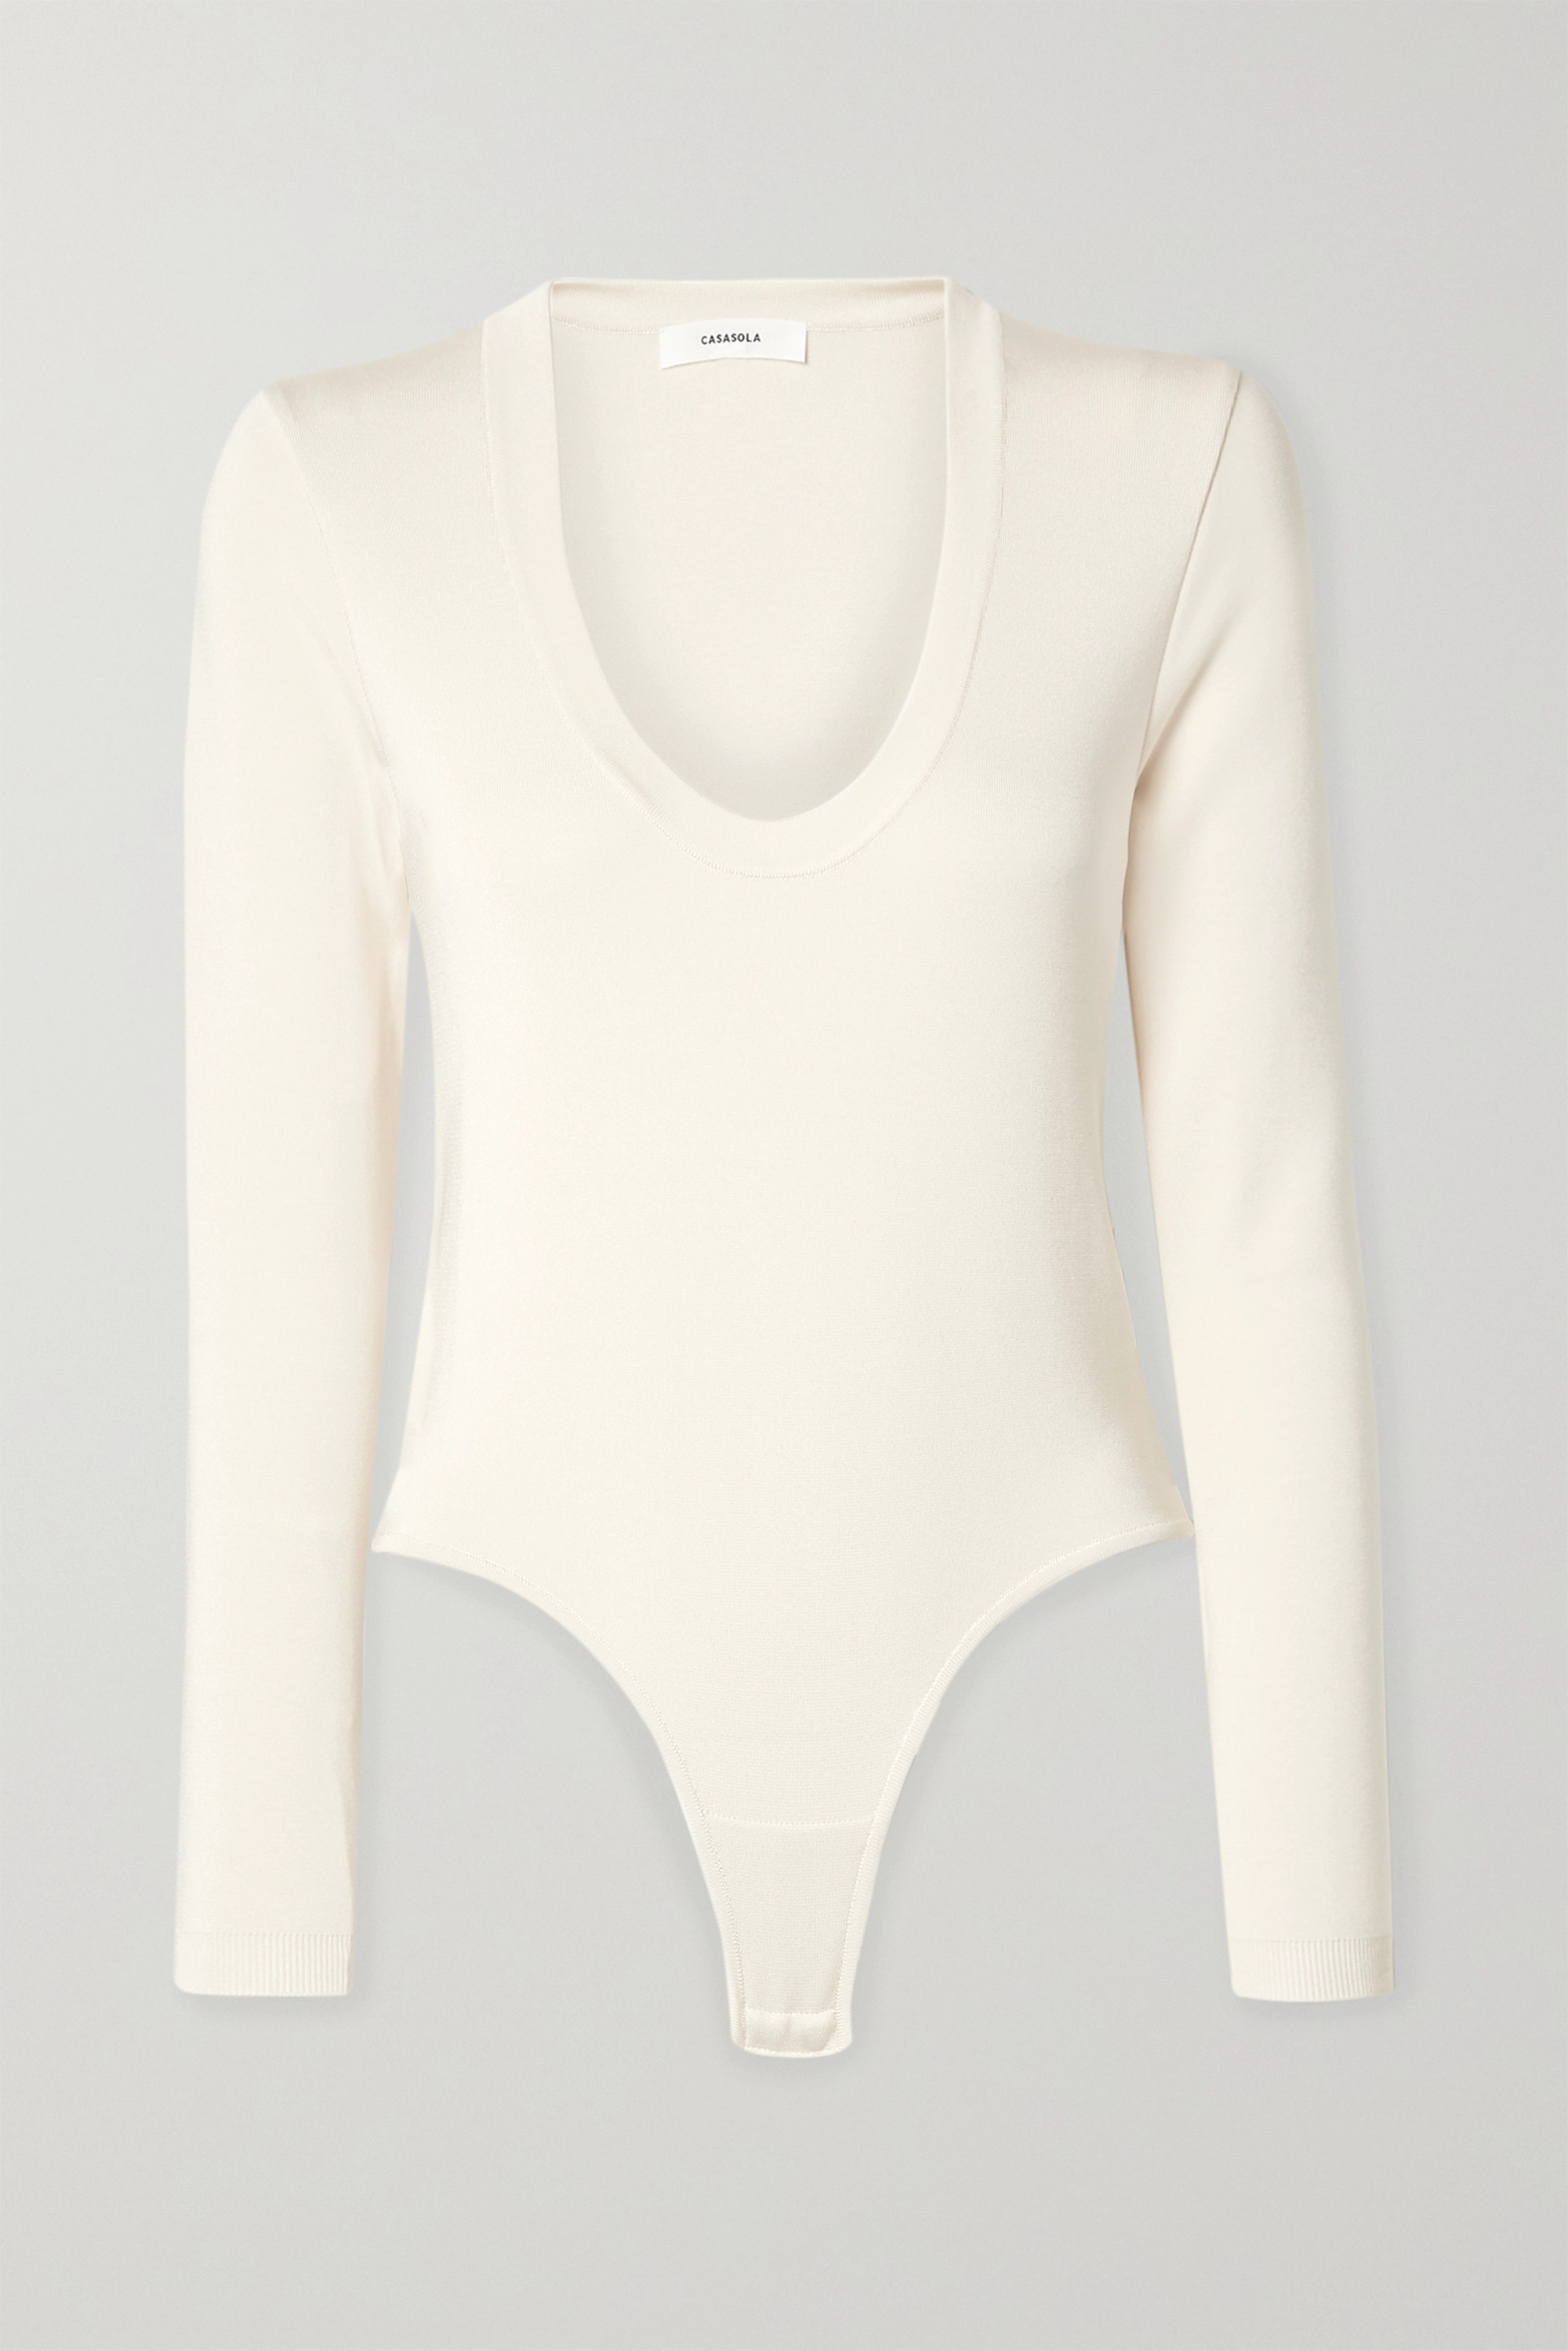 CASASOLA Stretch-jersey thong bodysuit